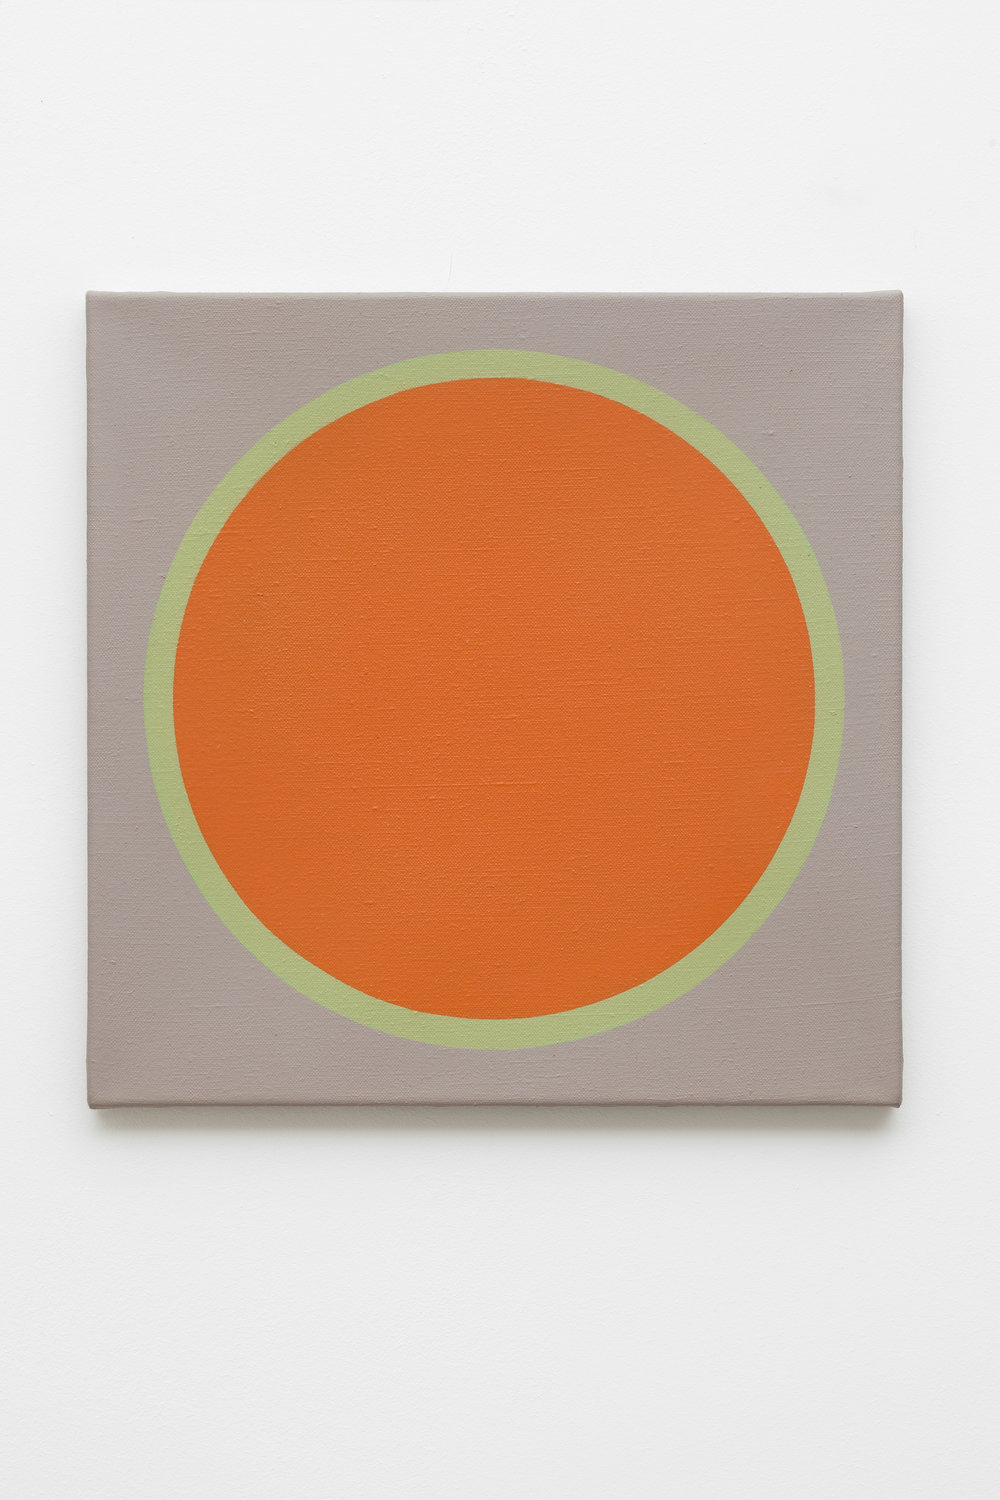 Friedrich Teepe  1969-2 , 1969 acrylic on canvas, 50 x 50 cm